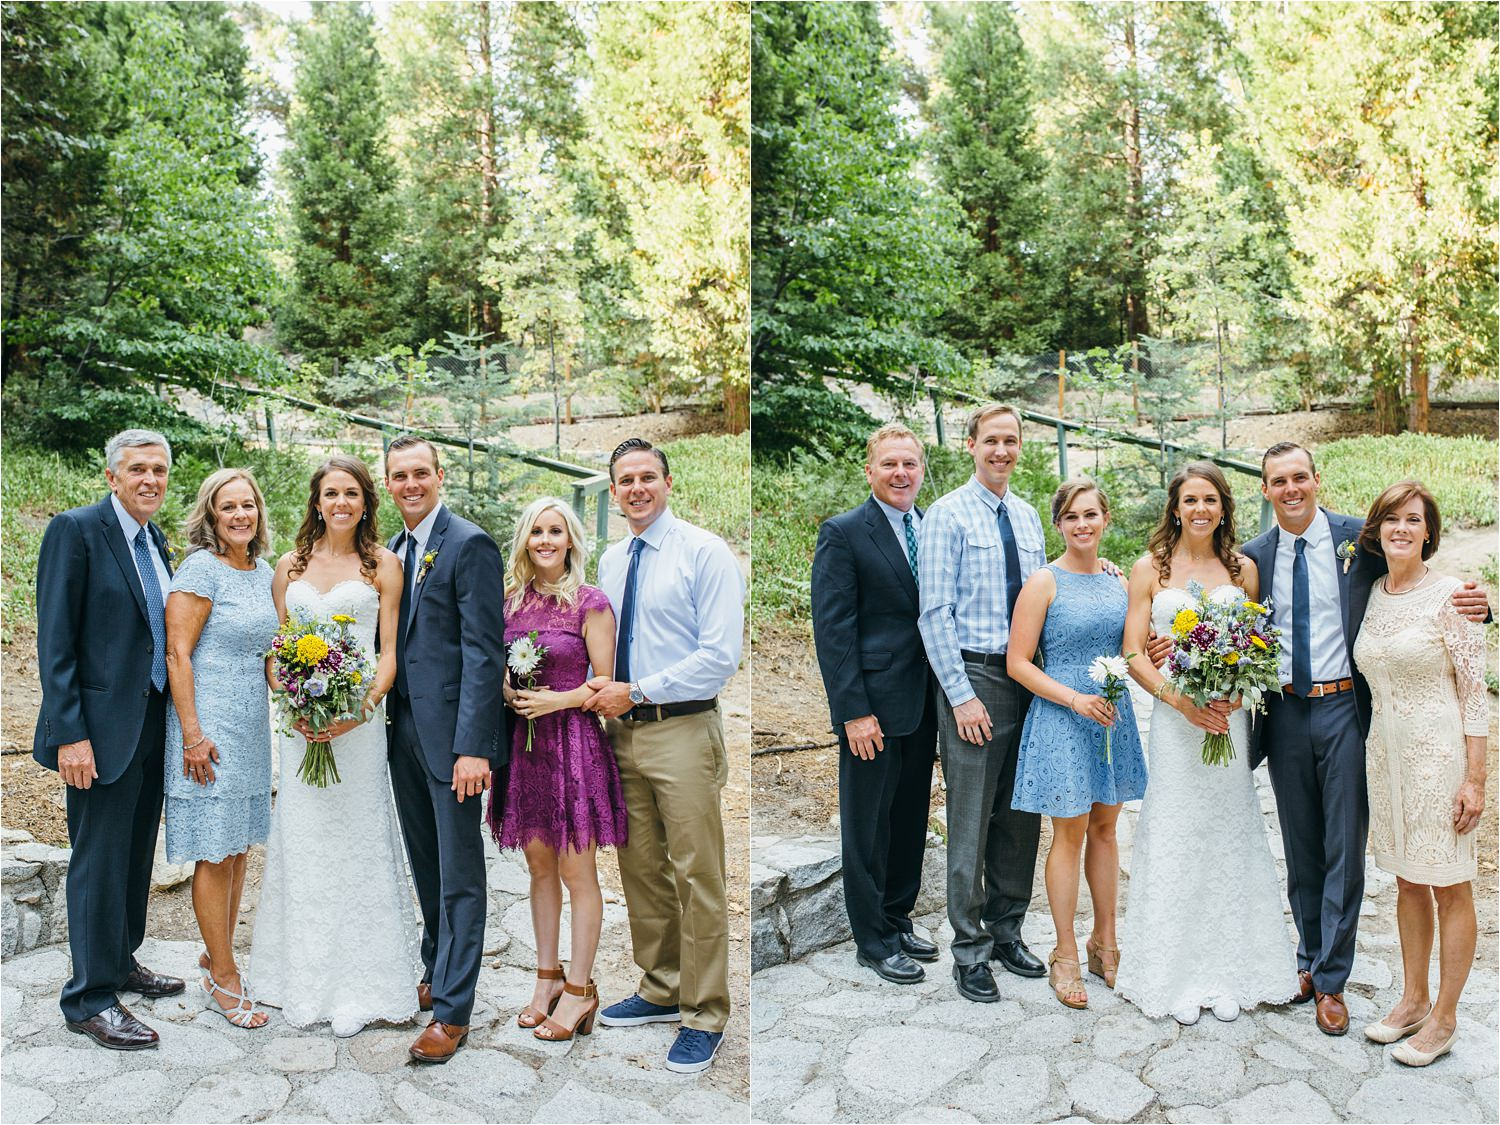 Family Photos - Family Photos in the mountains - Lake Arrowhead Family Photos - https://brittneyhannonphotography.com